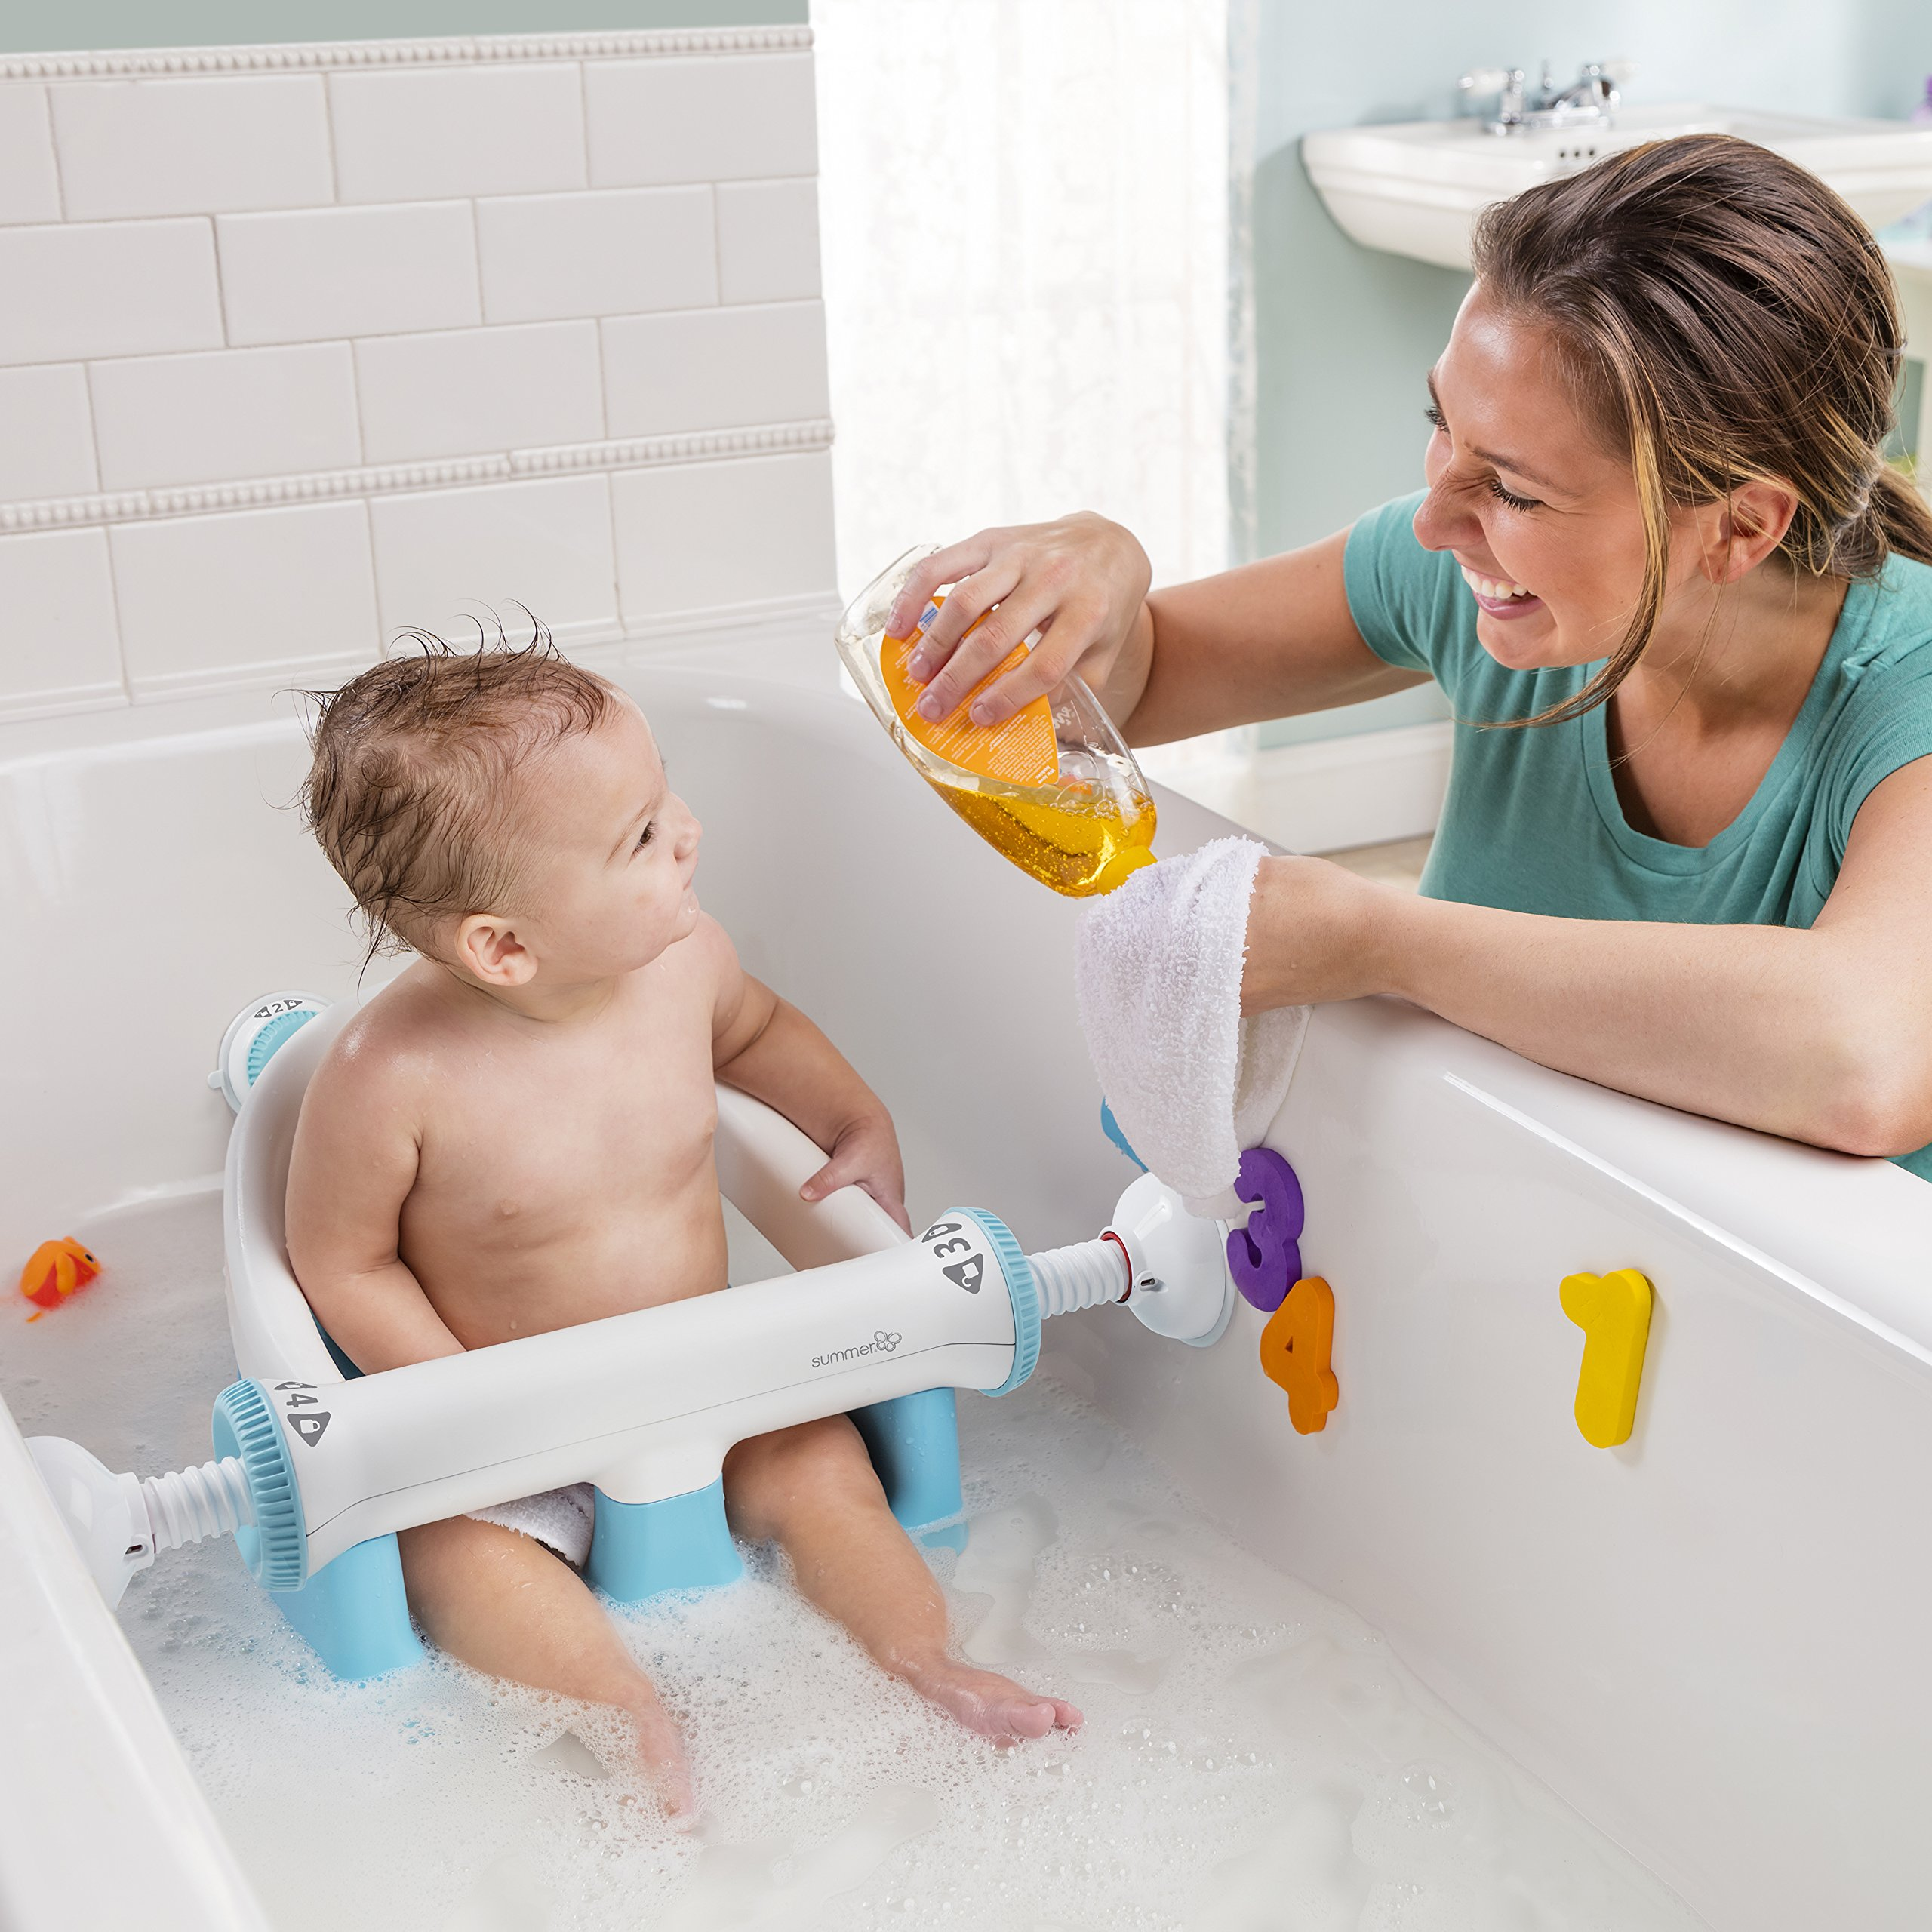 Summer Infant My Bath Seat, Baby Bathtub Seat for Sit-Up Bathing with Backrest Support and Suction Cups for Stability by Summer Infant (Image #4)